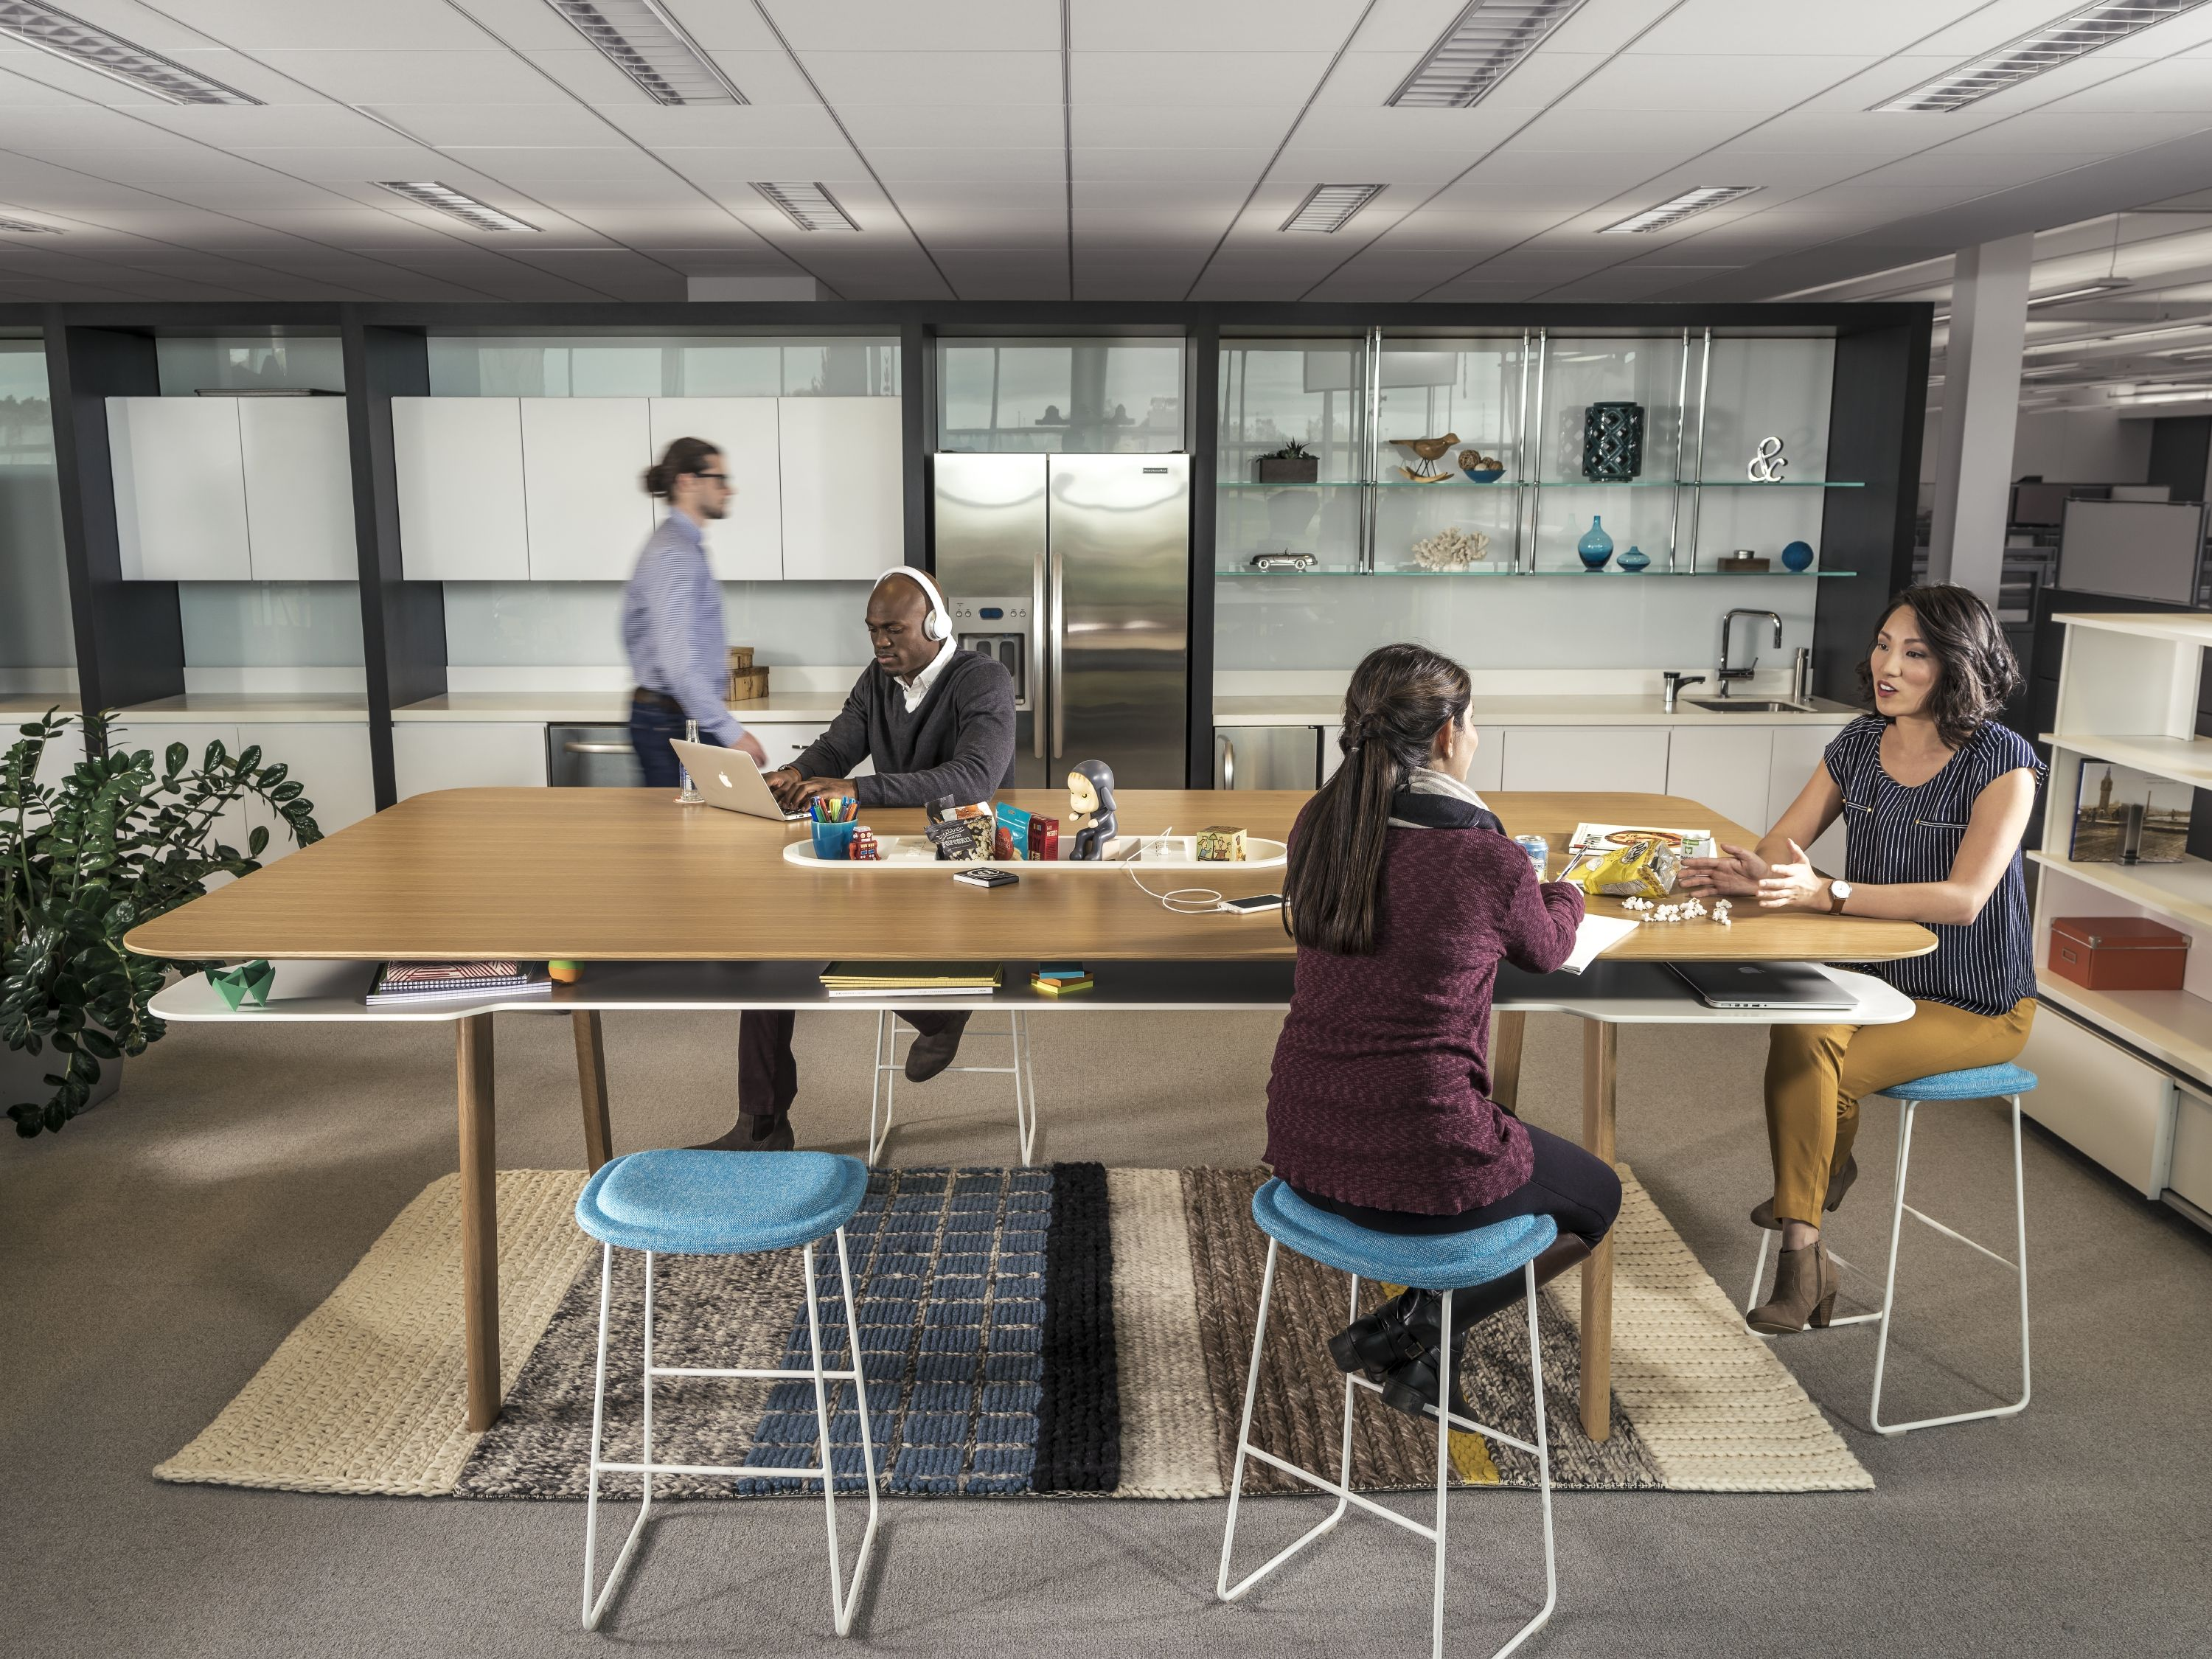 Immerse work surfaces were thoughtfully designed to help ...